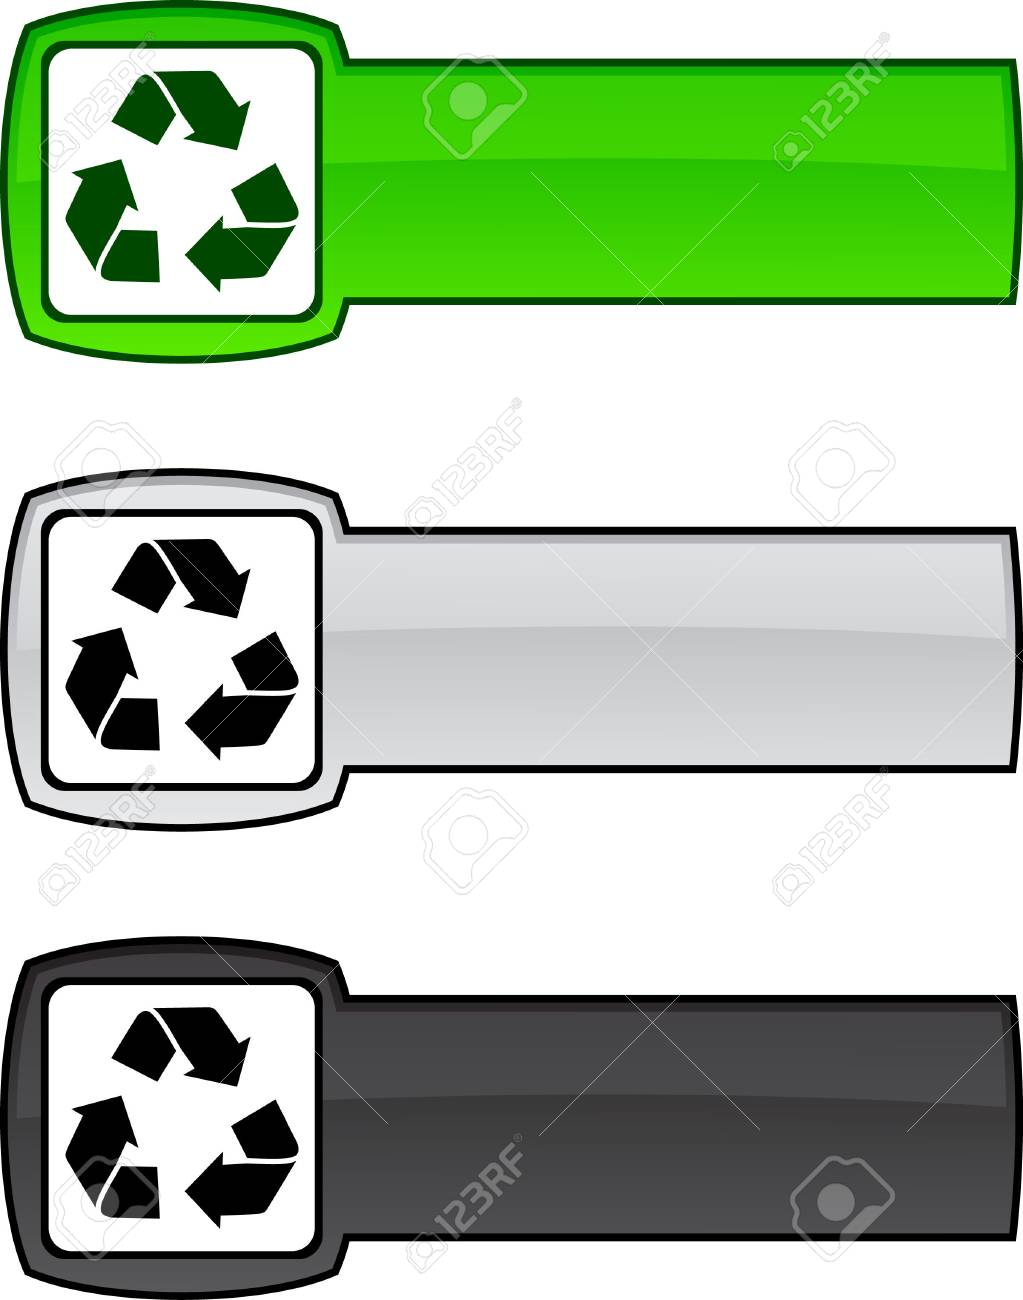 Recycle   web button. Vector illustration. Stock Vector - 6172331